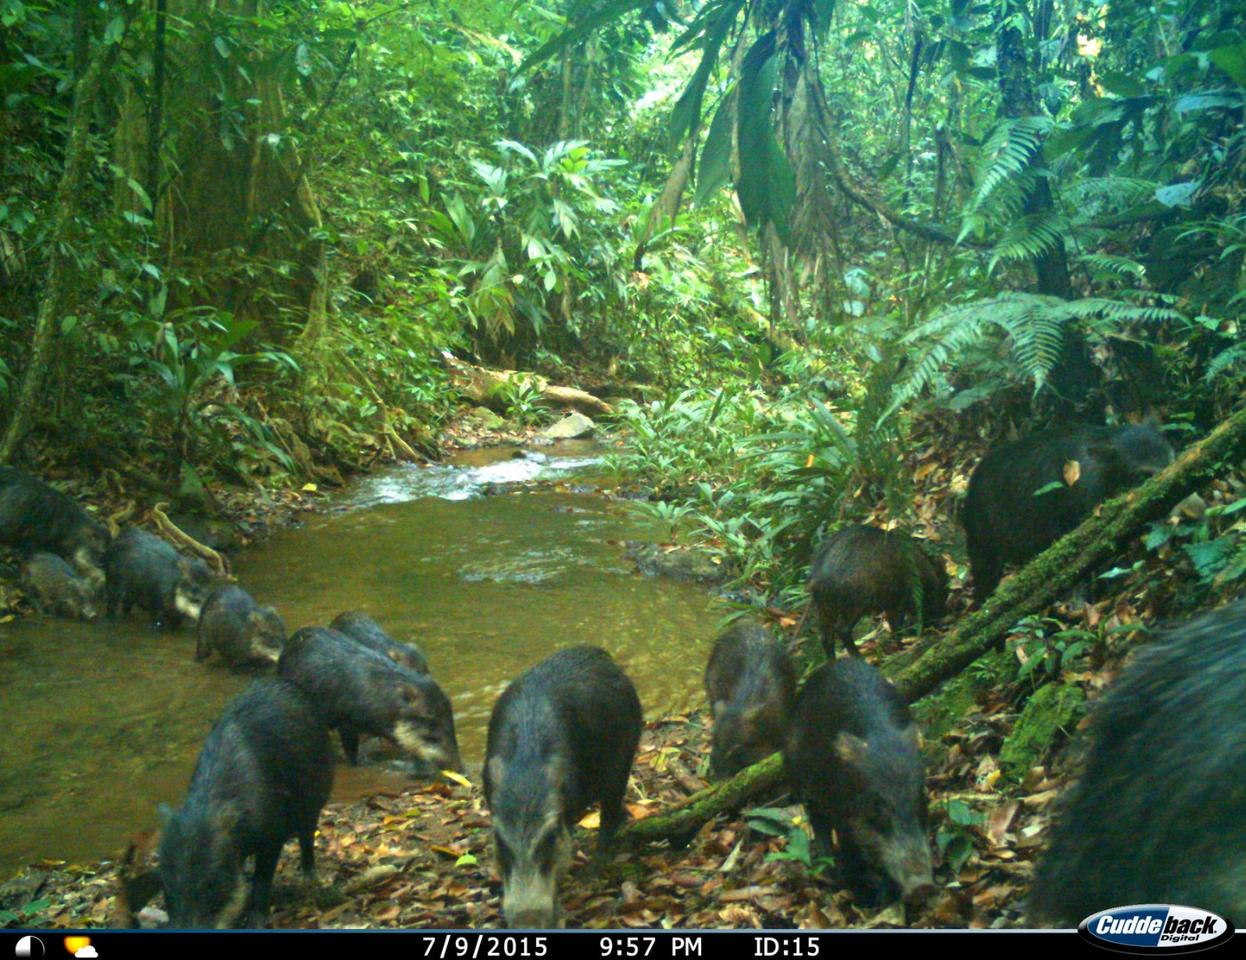 A thriving population of white-lipped peccaries was discovered in Honduras, which are struggling elsewhere on the continent thanks to deforestation